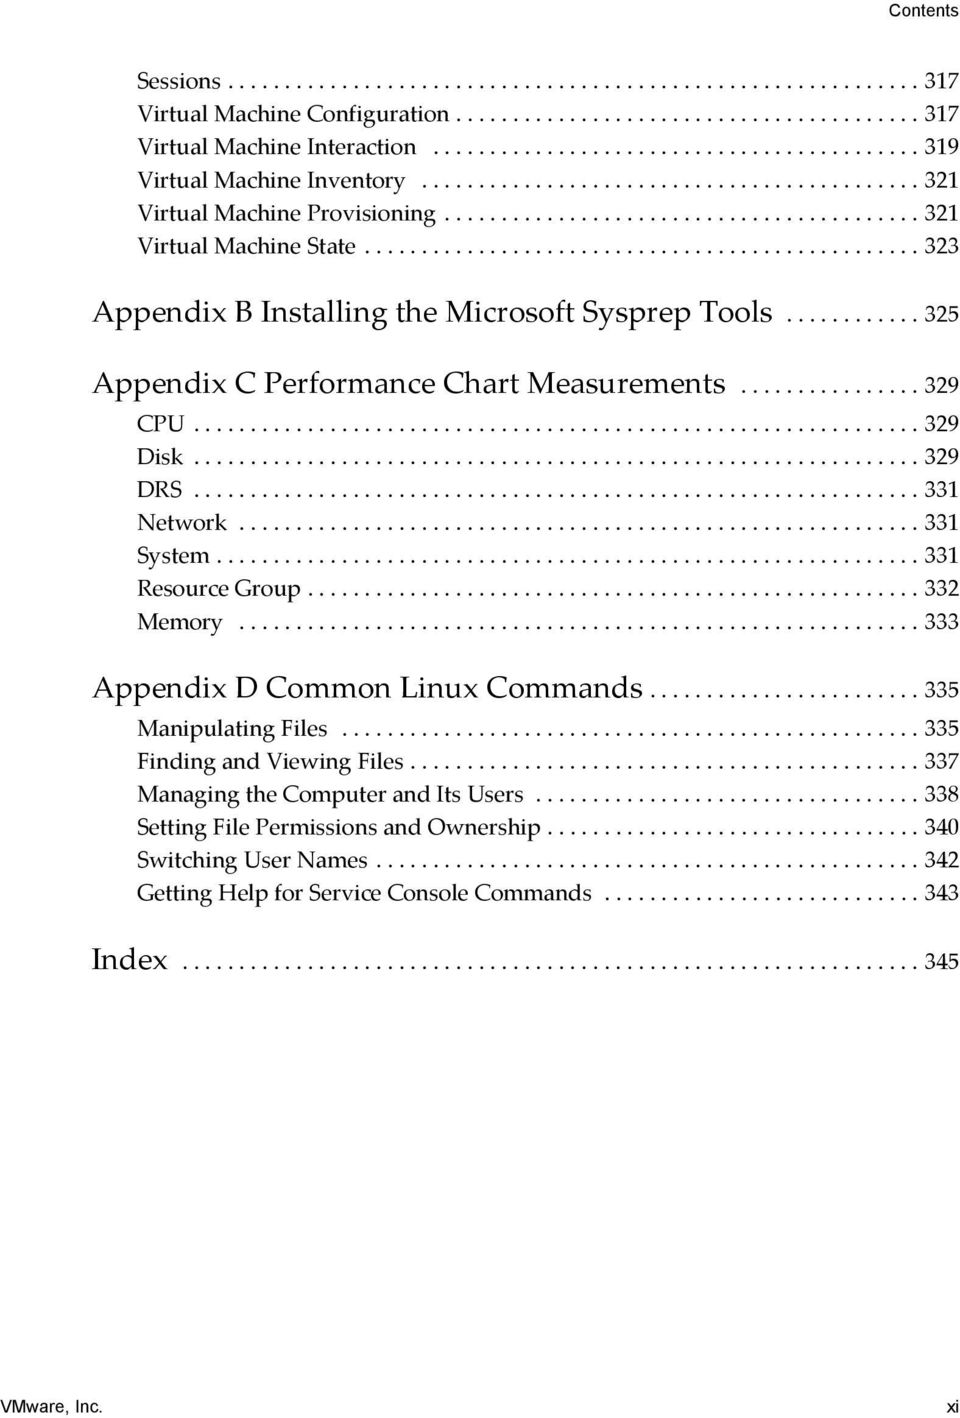 ................................................ 323 Appendix B Installing the Microsoft Sysprep Tools............ 325 Appendix C Performance Chart Measurements................ 329 CPU................................................................ 329 Disk.